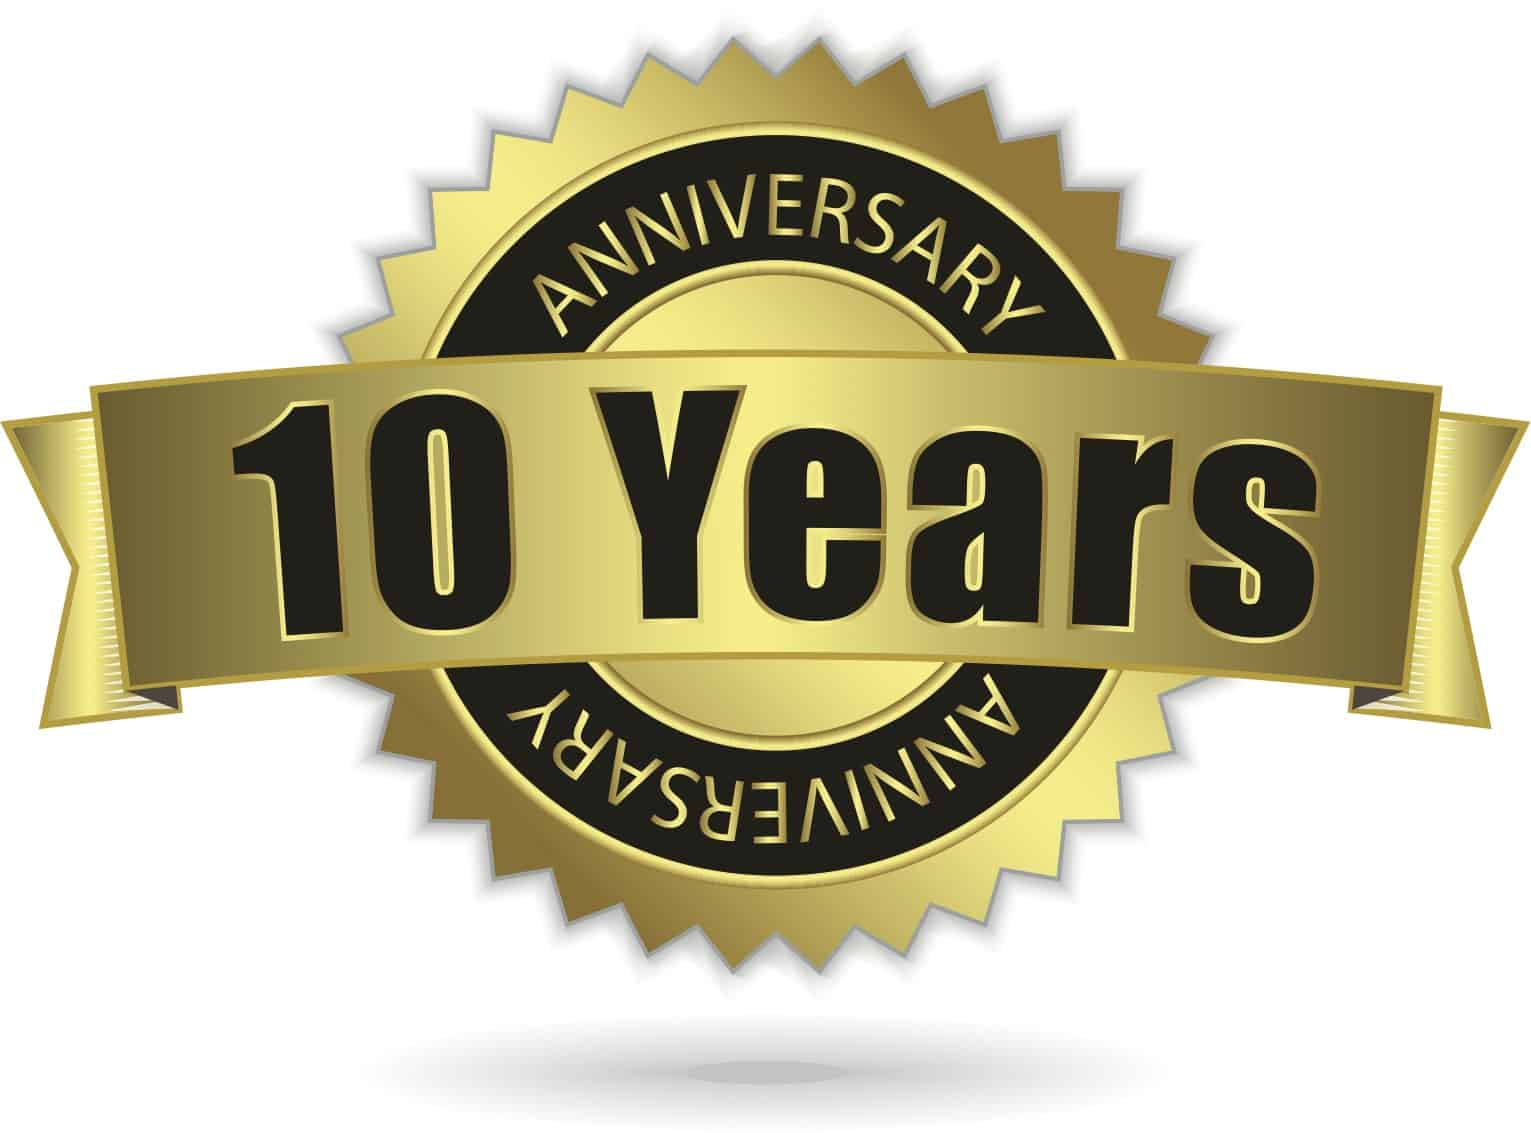 Portcullis Executive Travel  - 10 years